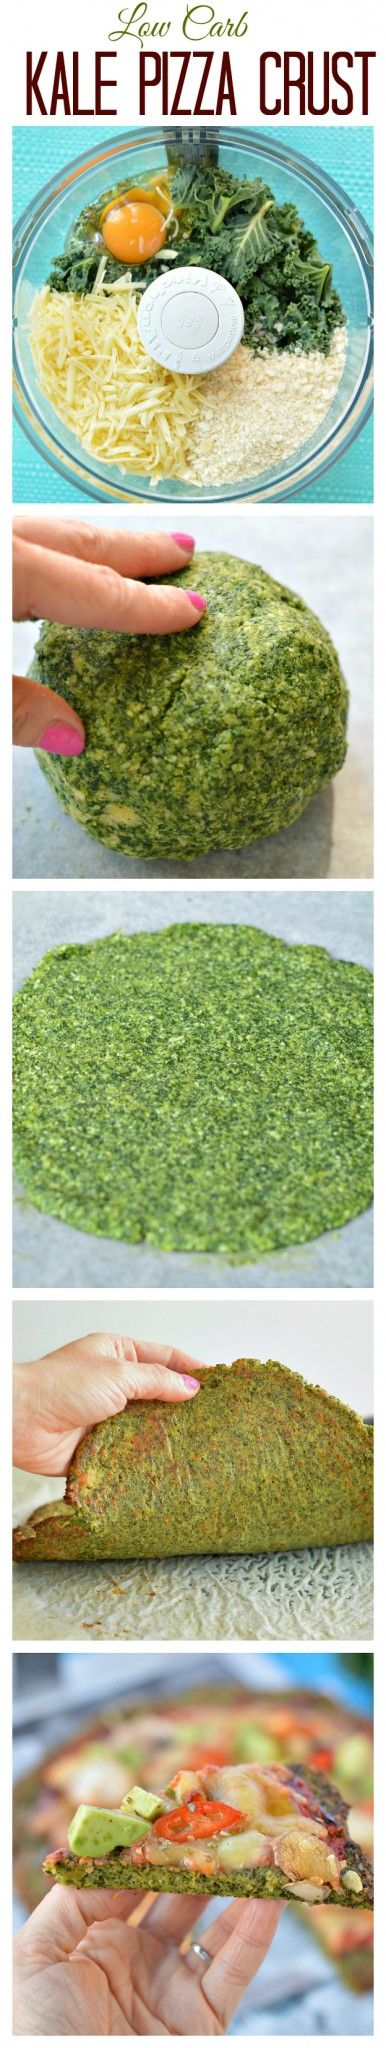 Kale Pizza Crust Low Carb steps by steps